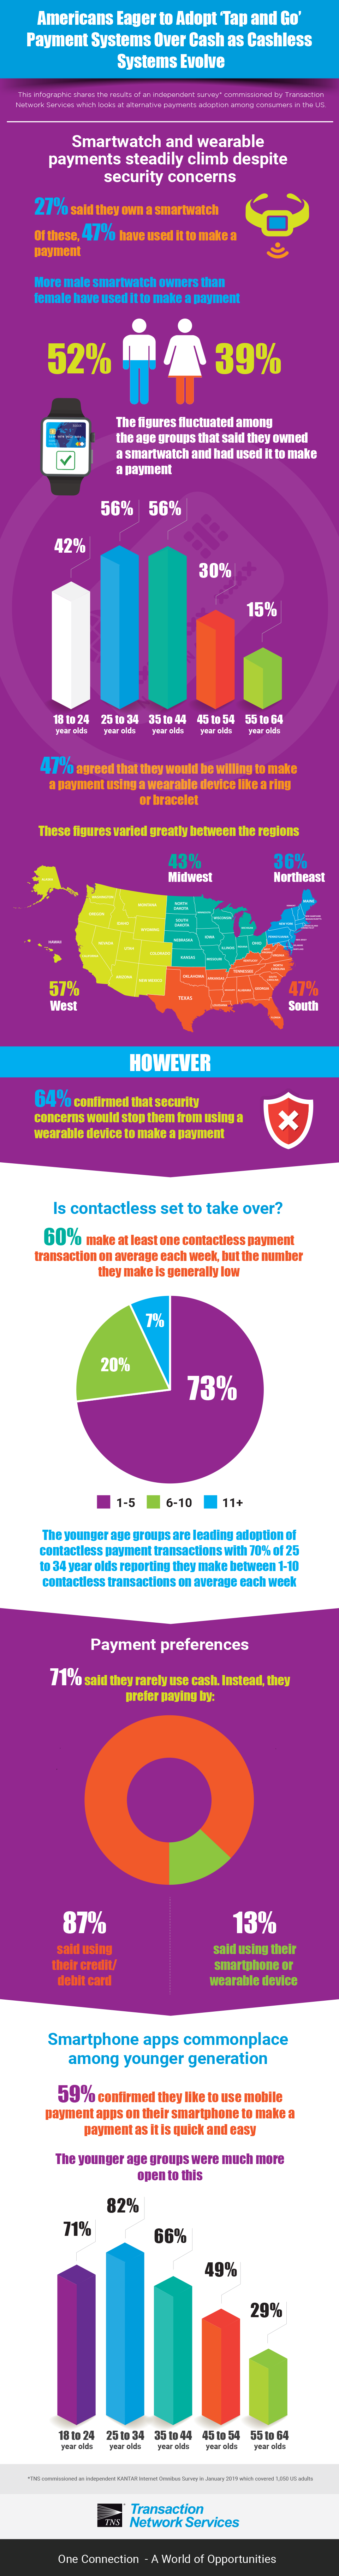 Americans Eager to Adopt 'Tap and Go' Payment Systems Over Cash as Cashless Systems Evolve